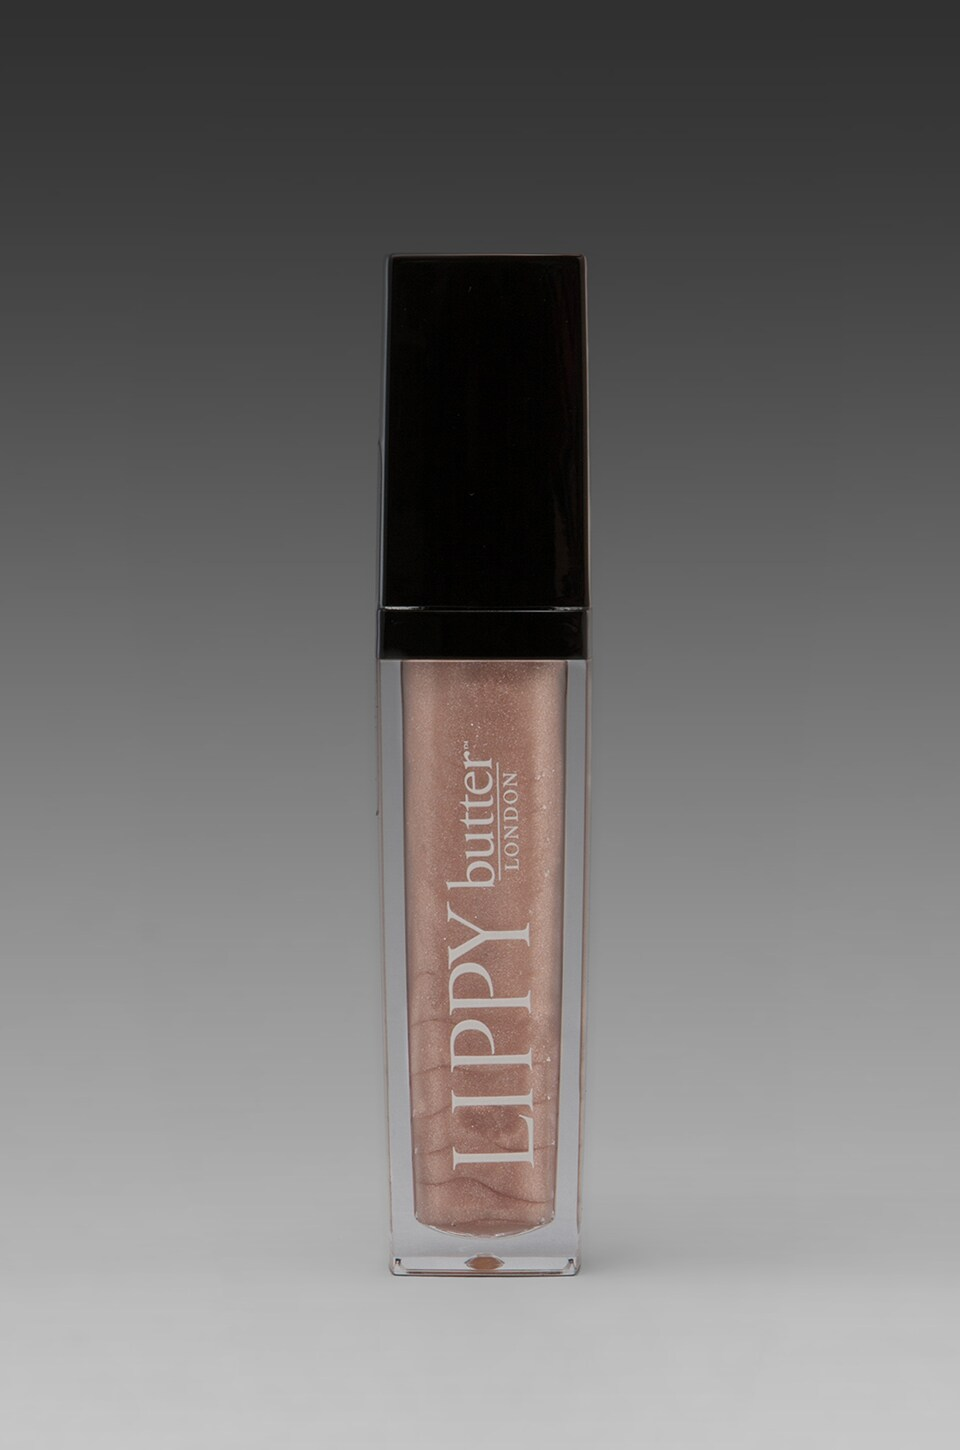 butter LONDON Lip Gloss in Beaker